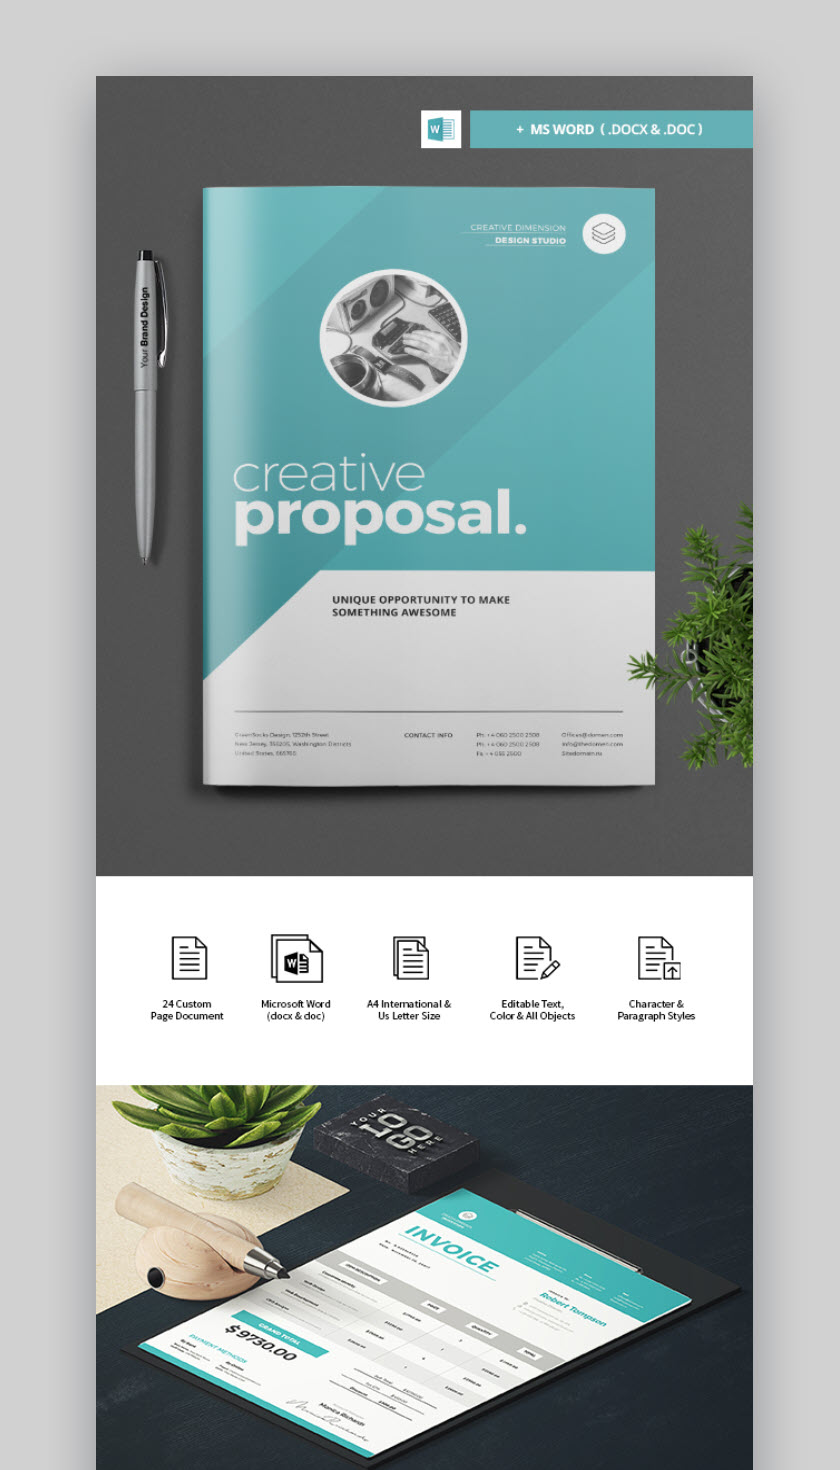 Contoh Proposal Word : contoh, proposal, Professional, Business, Project, Proposal, Templates, Modern, Pages